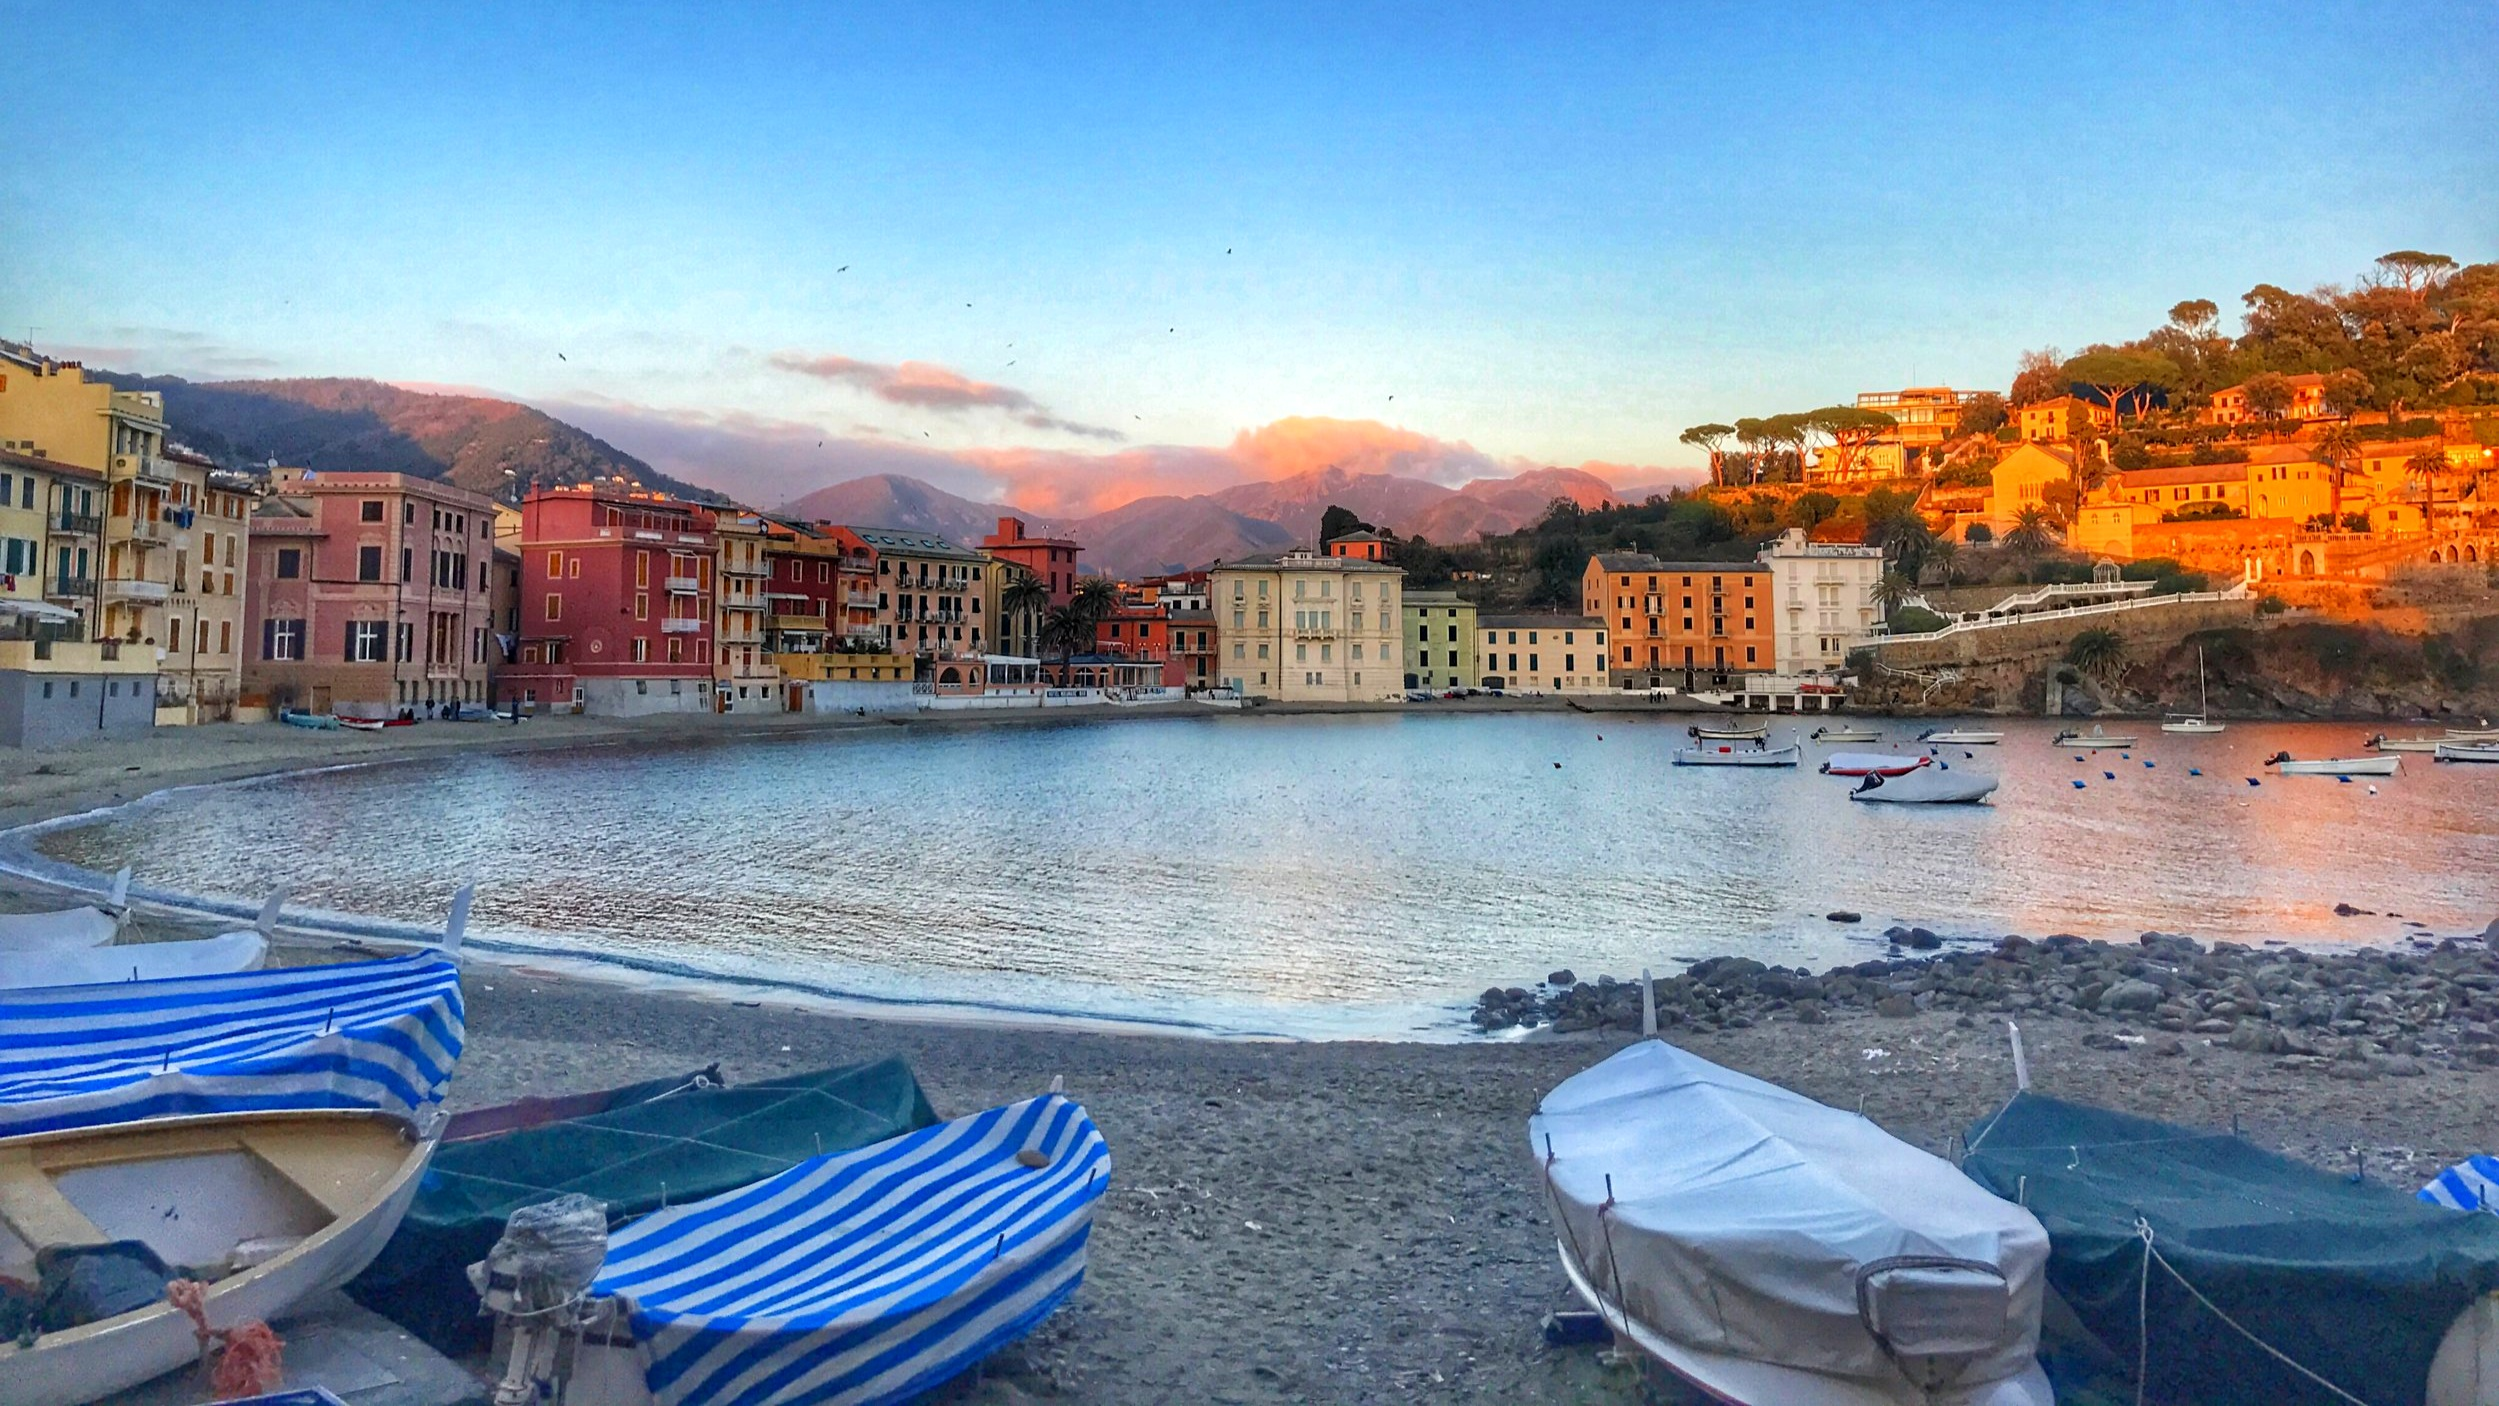 Liguria has the unique charm of sophisticated Italy at its best, together with enchanting sea and breathtaking scenery - Bay of Silence, Sestri Levante